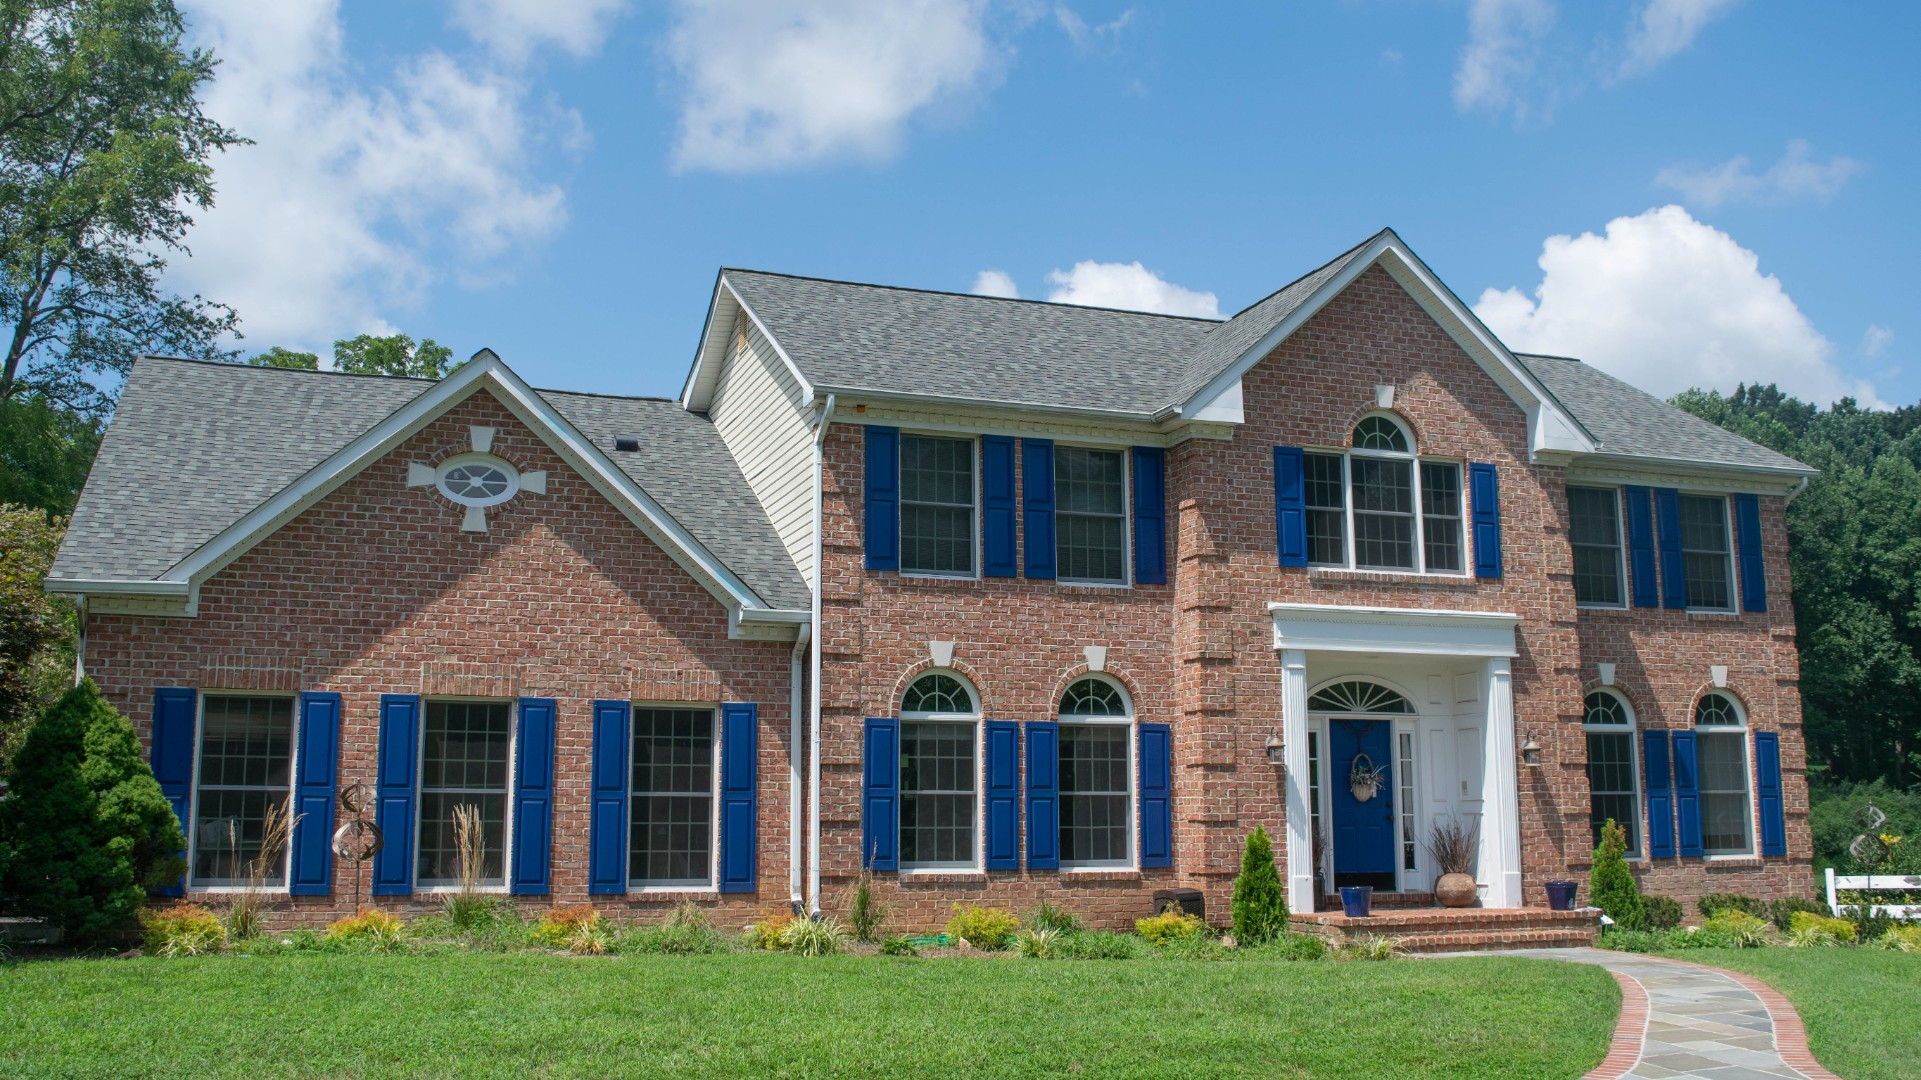 SmartRoof - Residential, Commercial Maple Shade Township NJ Roofing Contractors